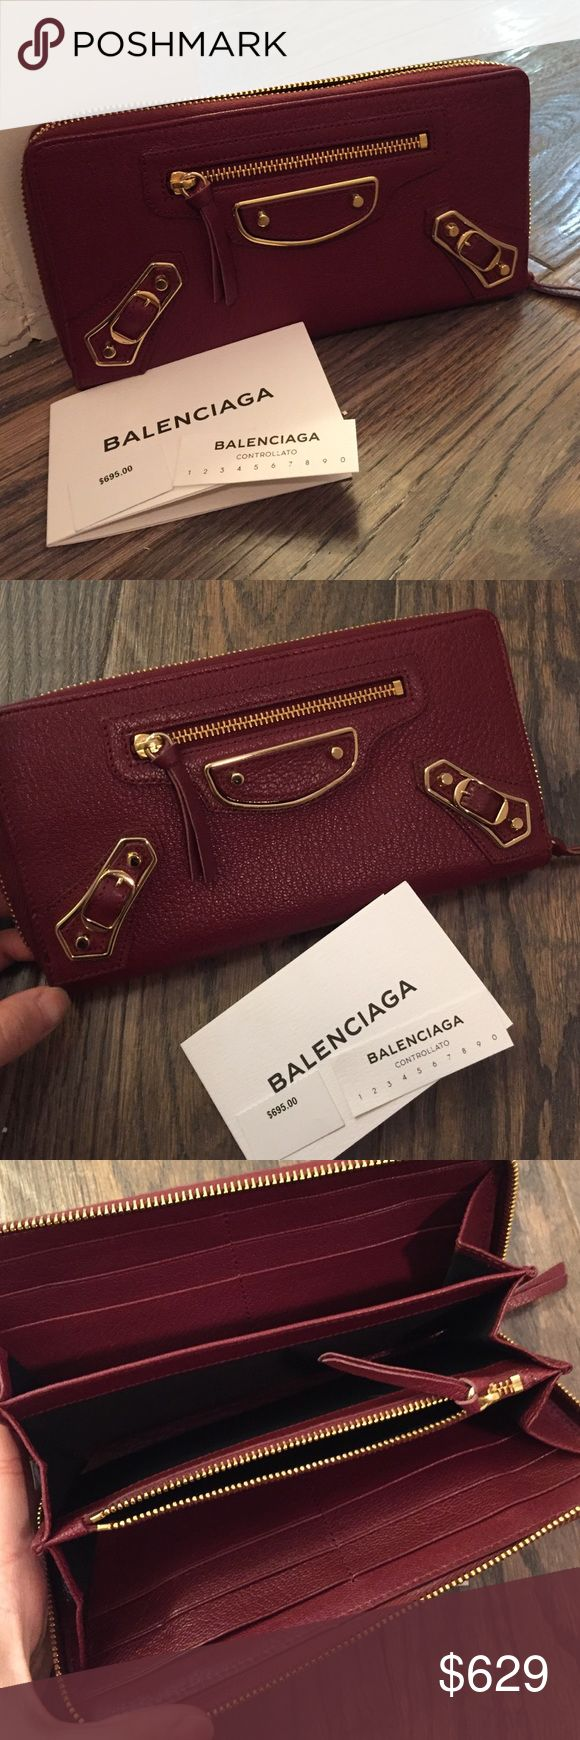 NWT Authentic Balenciaga Wallet Long wallet with zip closure. Wrap around zip closure Gold metal hardware. Front zip pocket. Leather zipper pull. Coin zip pocket. 3 bills compartments. 12 credit card slots. Embossed balenciaga logo inside. Made in italy. 100% lambskin. Color: dark red. Never used, no scratches and perfect leather condition. No box. Original price includes tax at purchase Balenciaga Bags Wallets